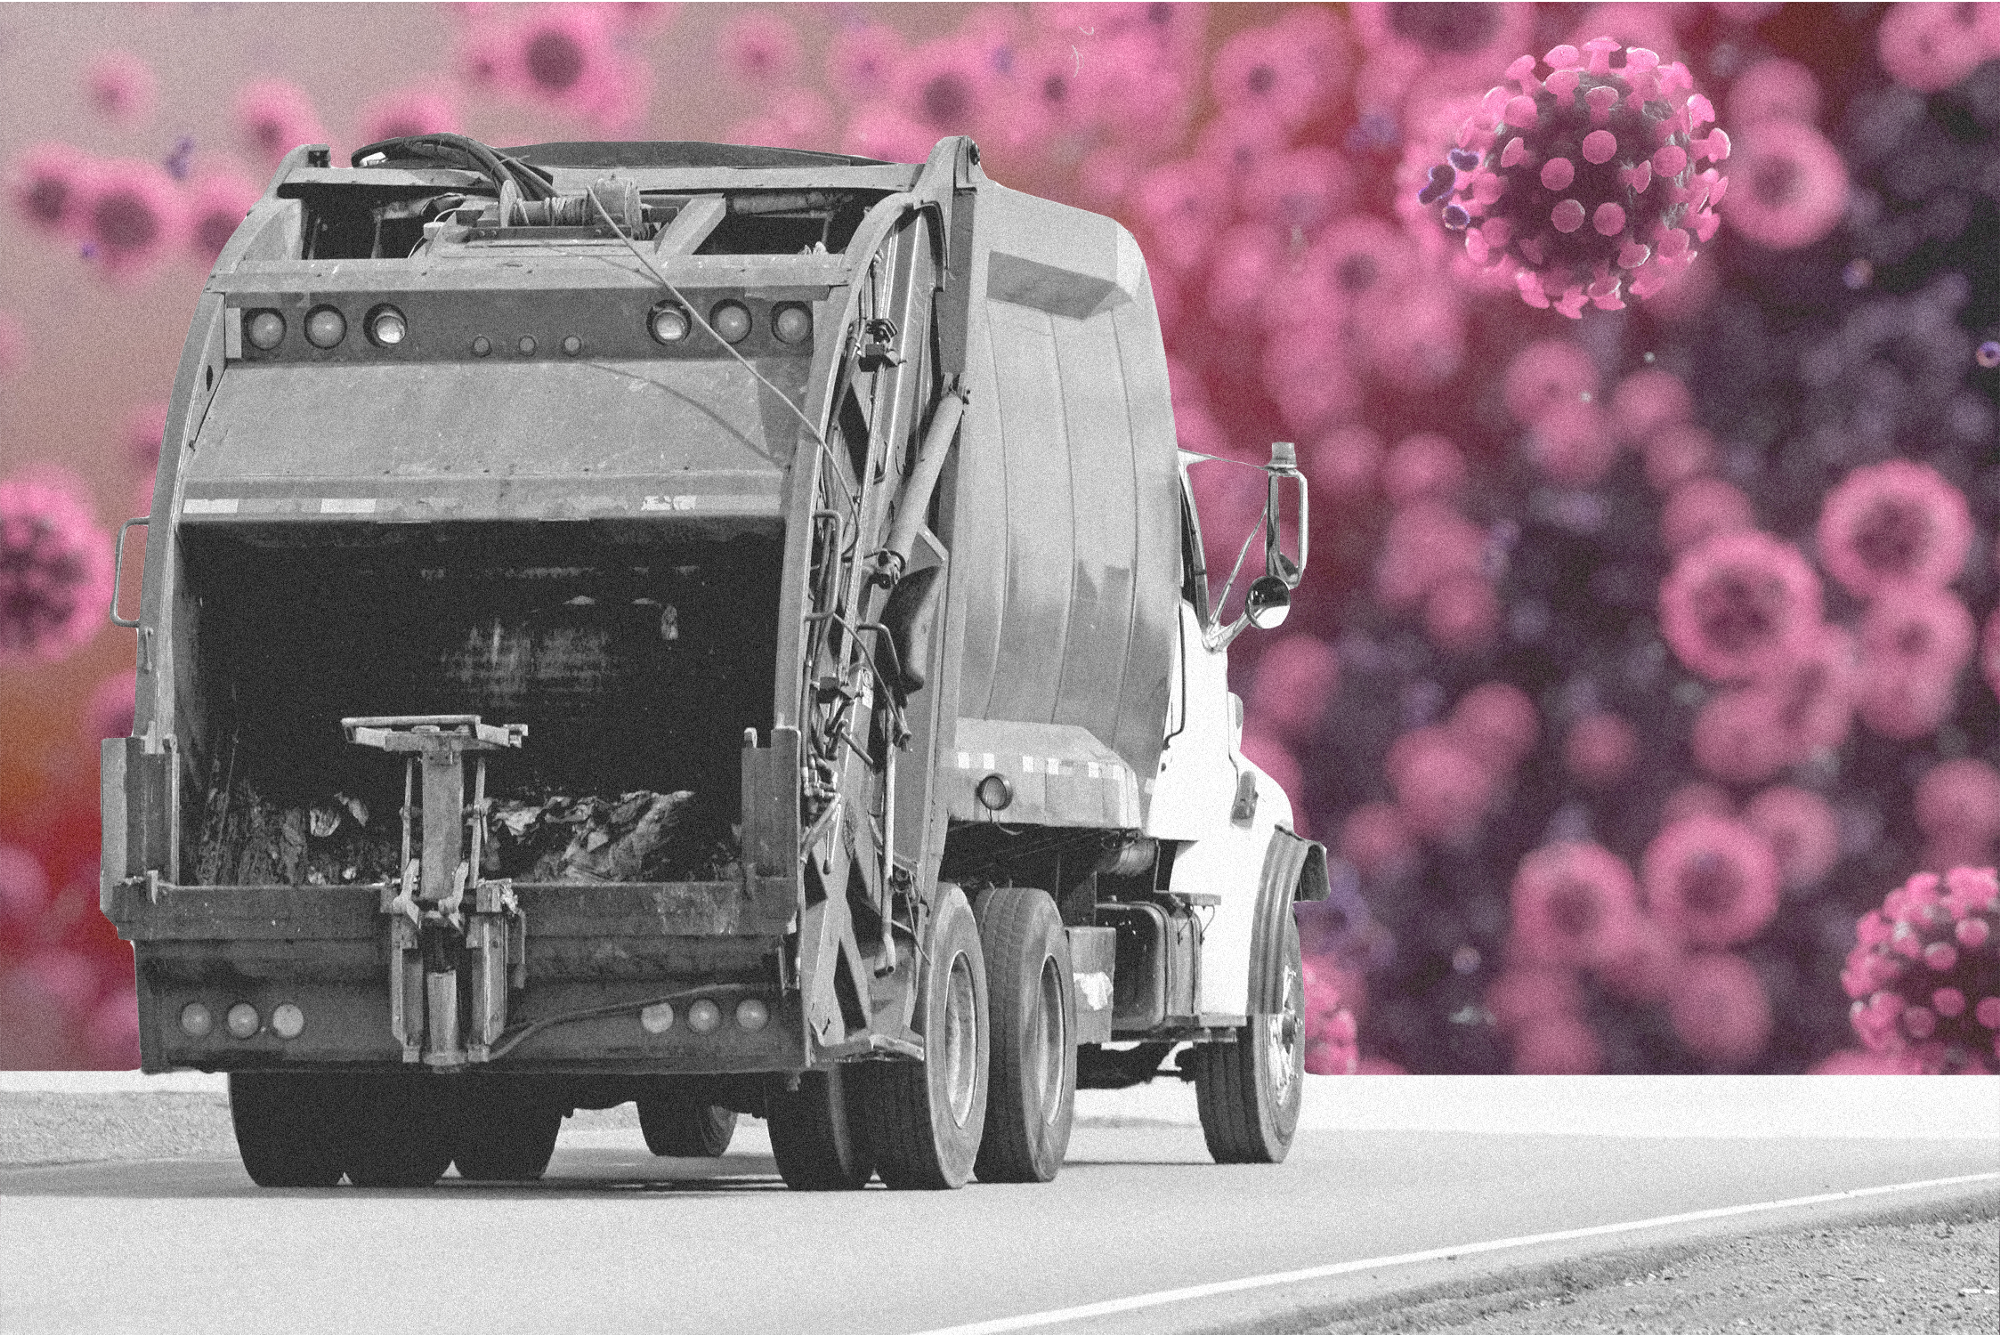 A photo illustration of a garbage truck against a background of coronaviruses.